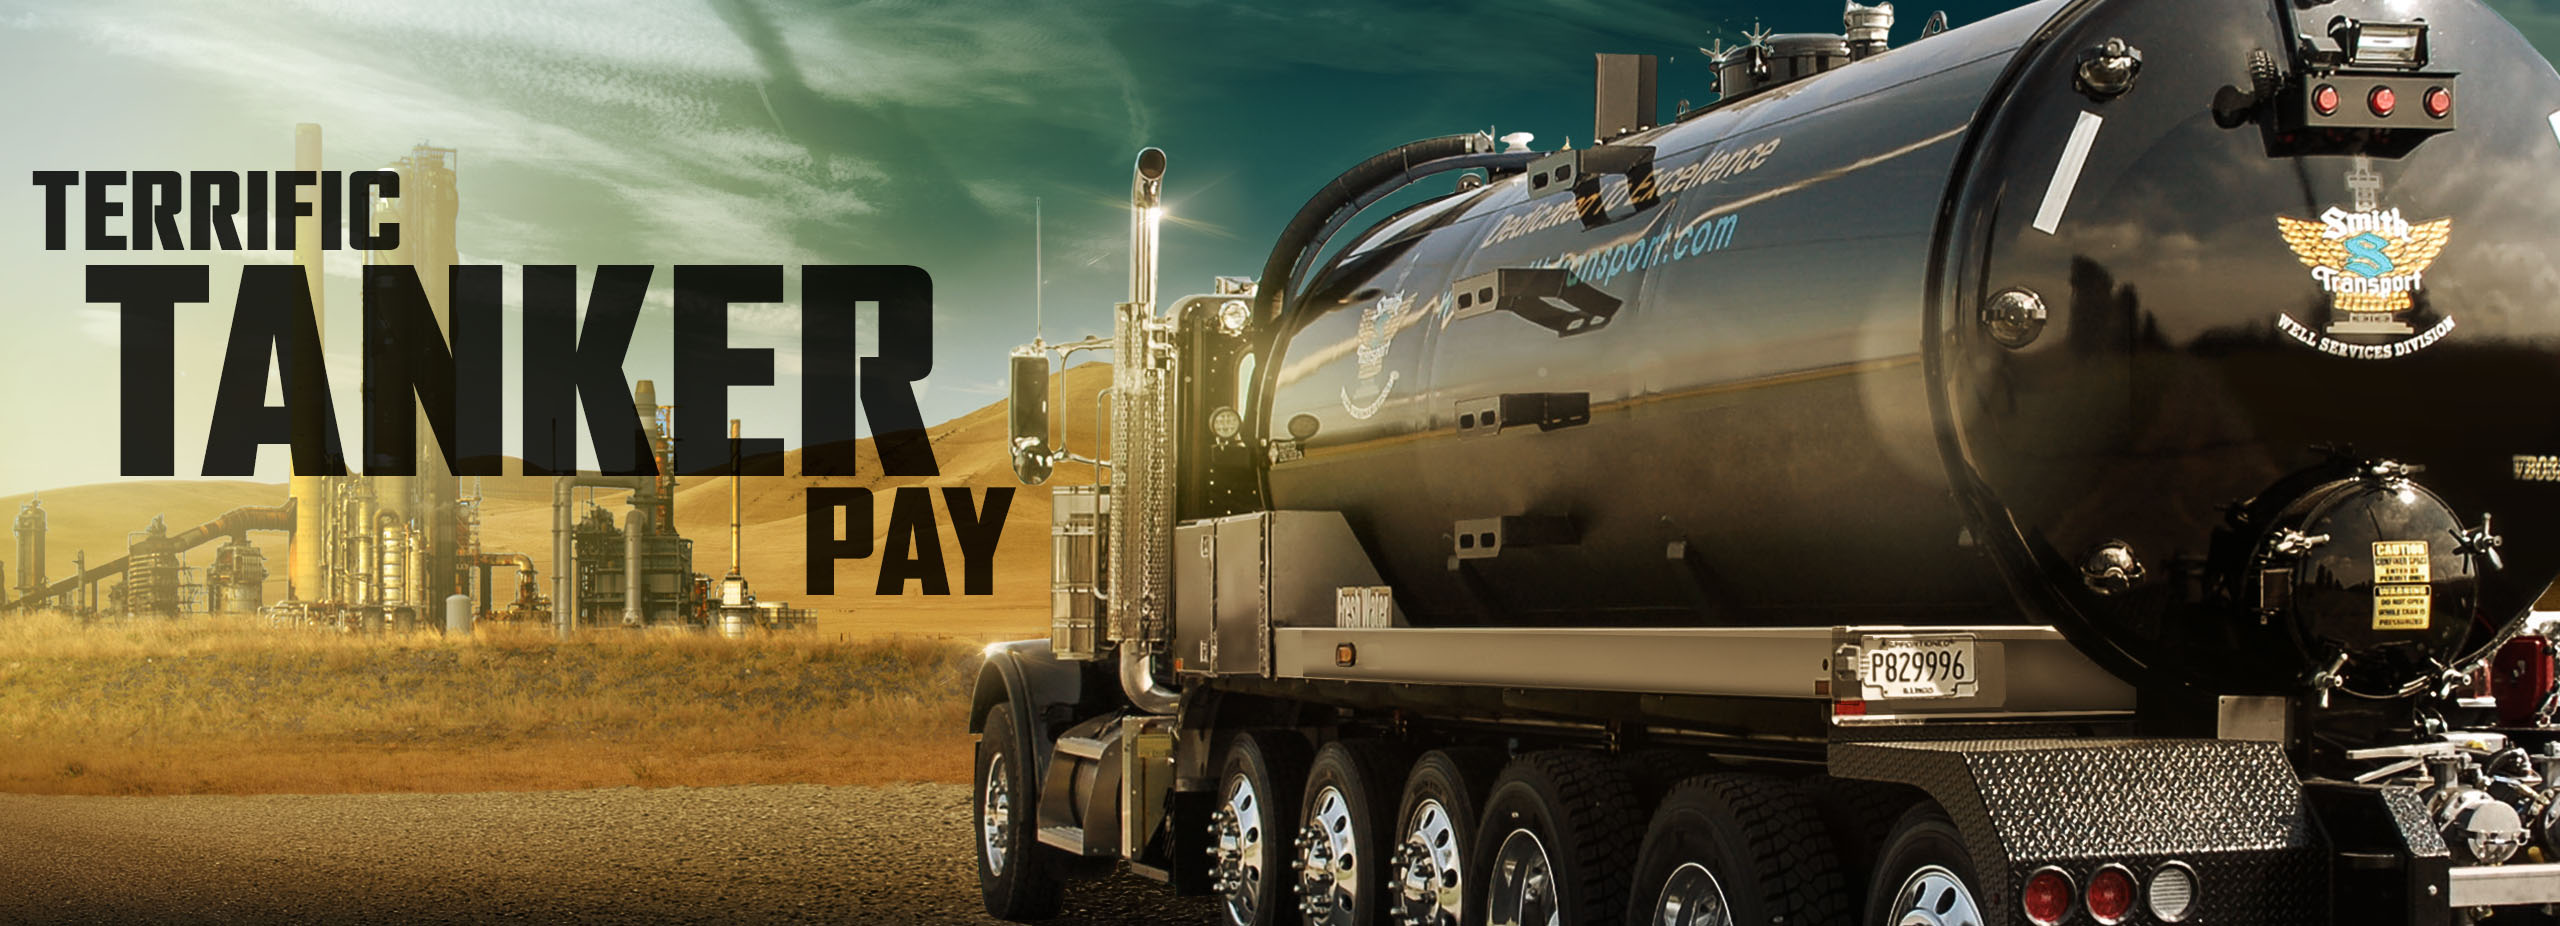 Terrific Tanker Pay